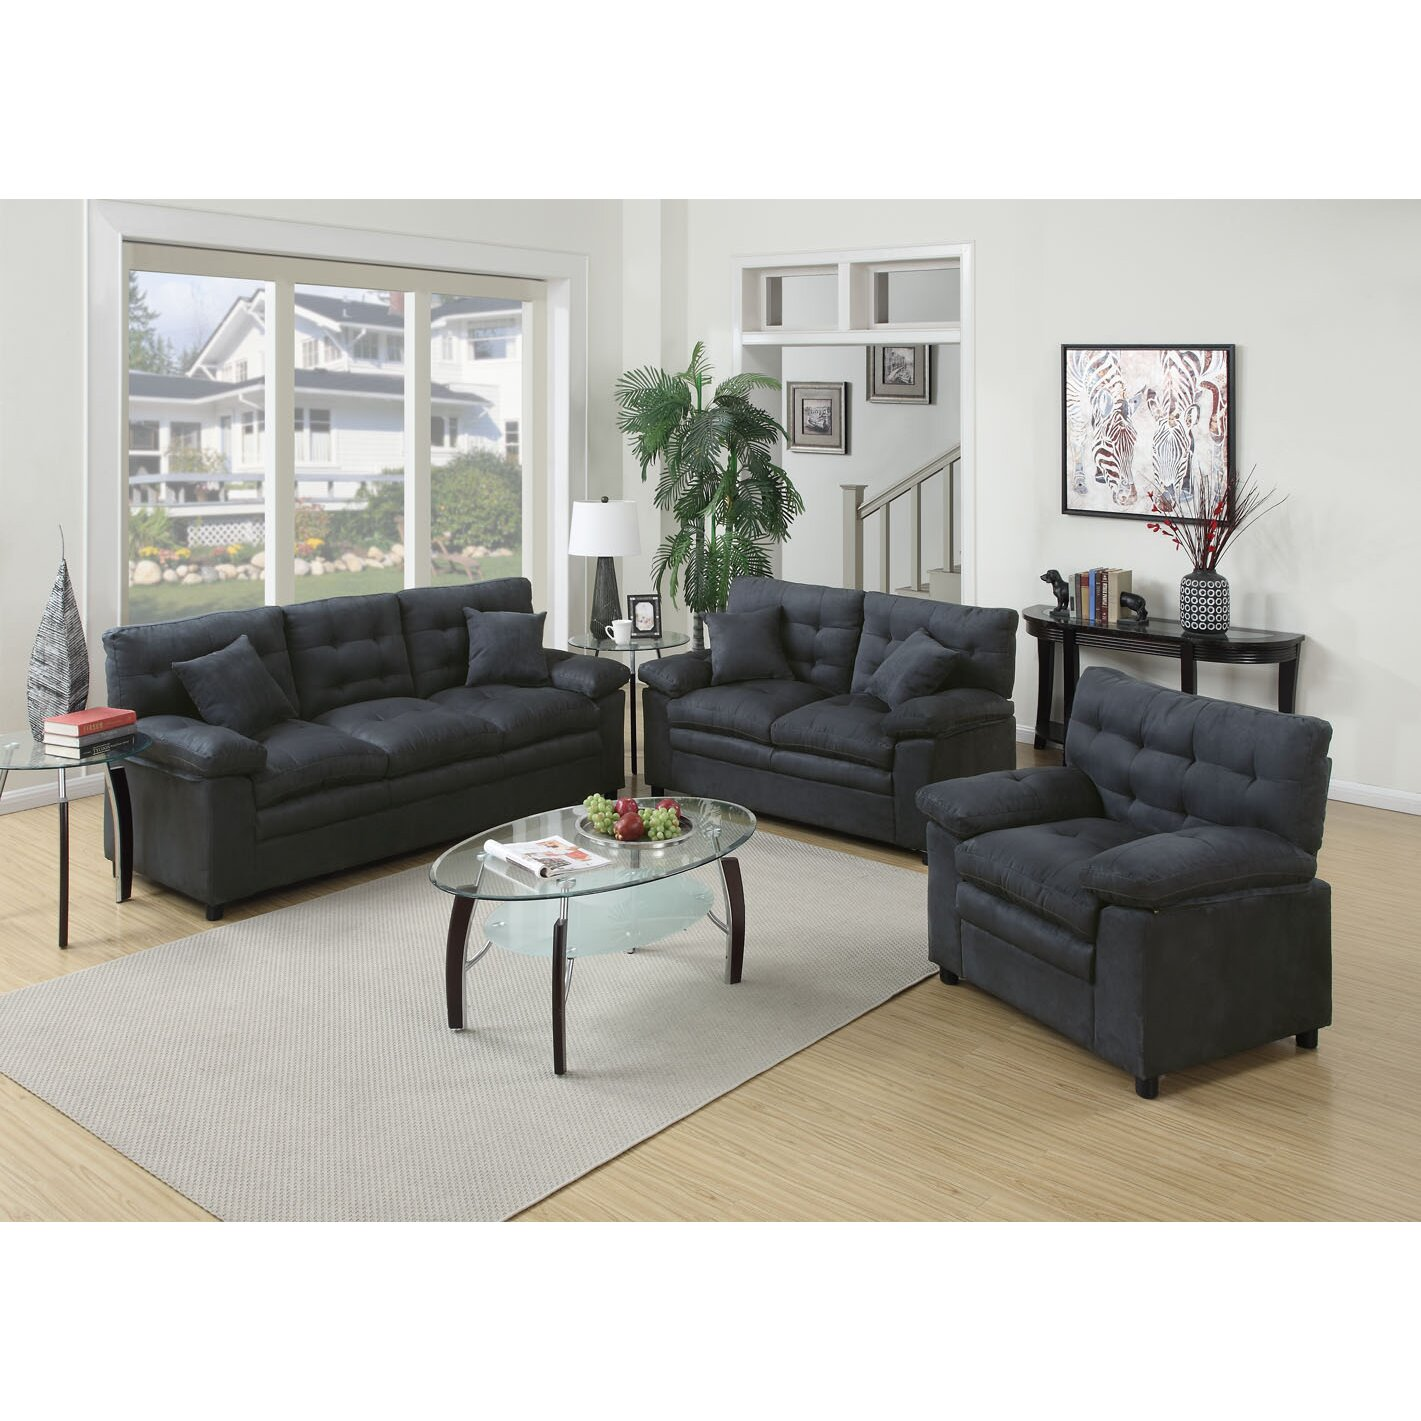 Poundex bobkona colona 3 piece living room set reviews for Living room 3 piece sets